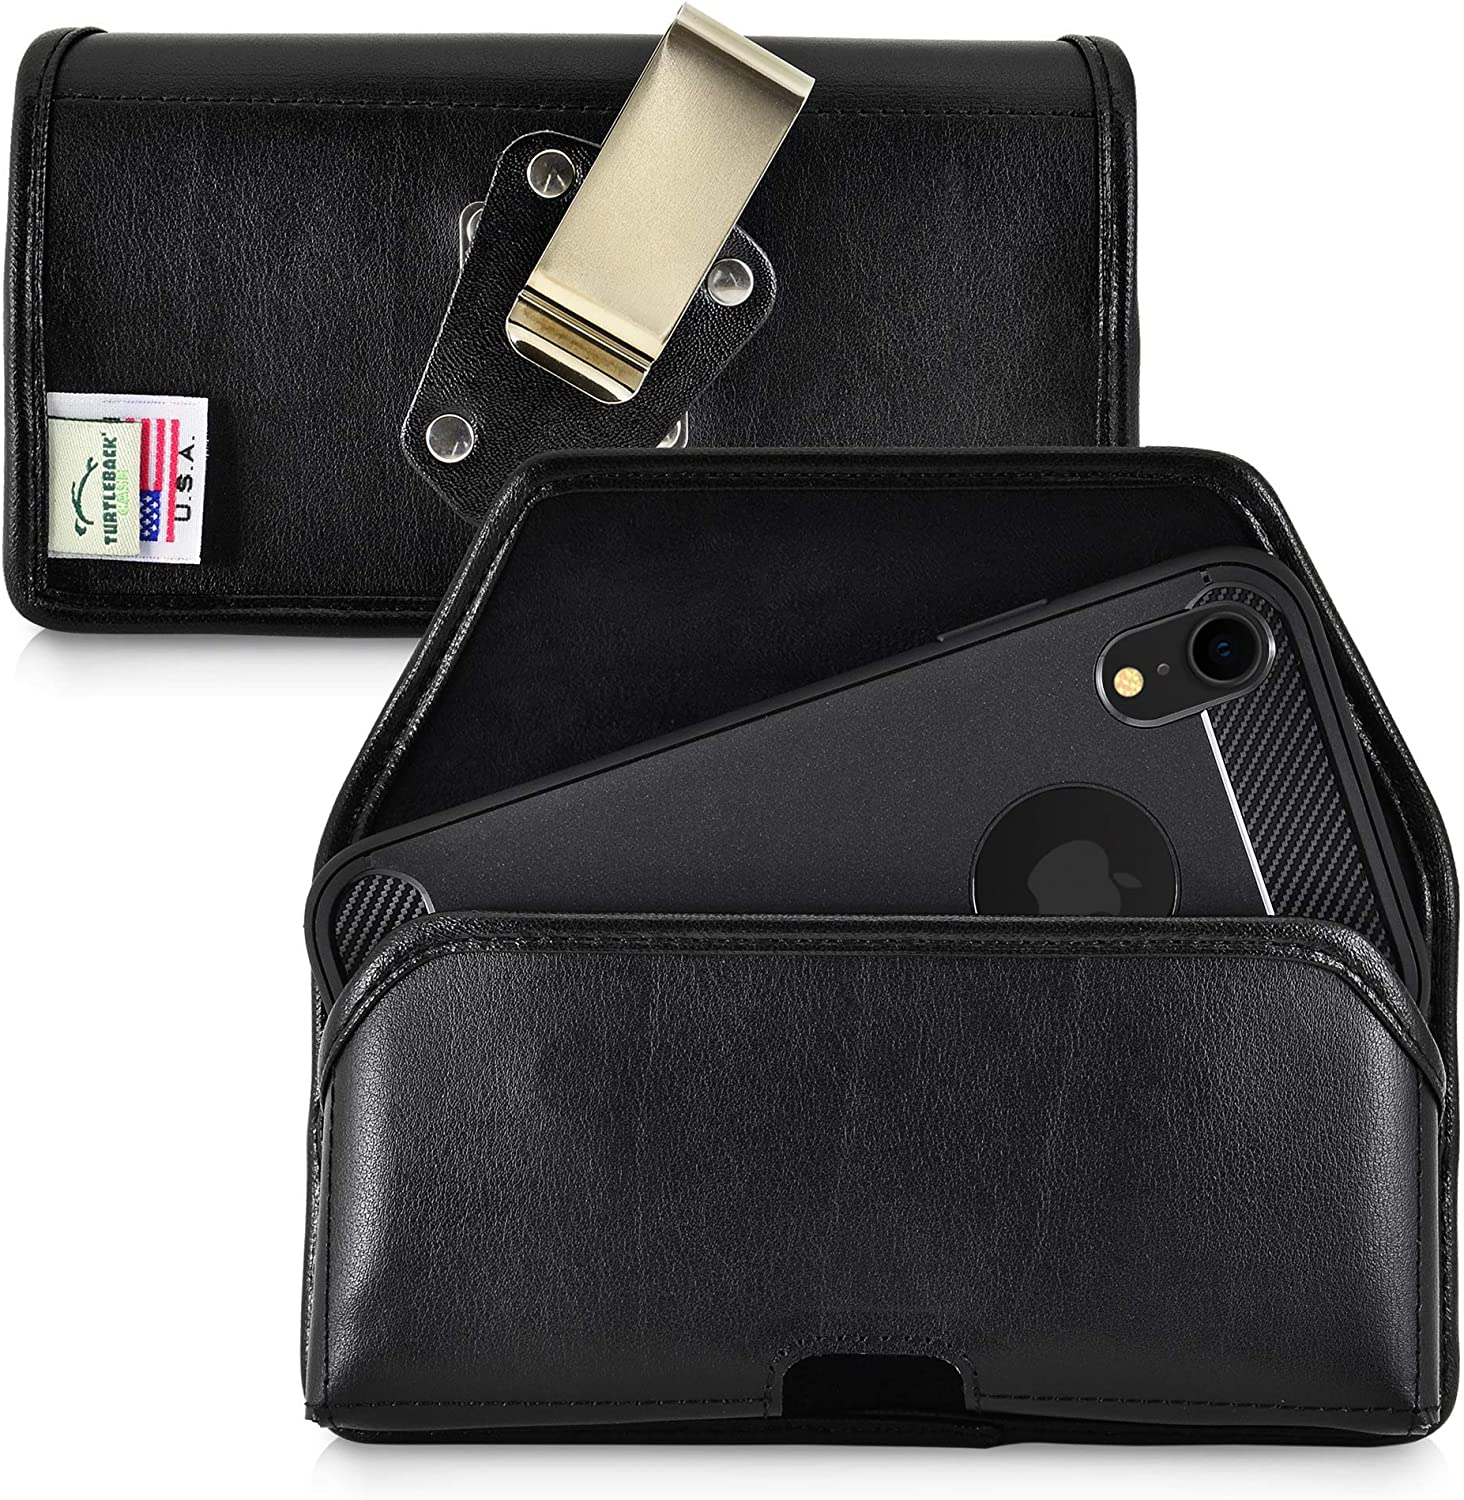 Turtleback Belt Case Designed for iPhone 11 (2019) and iPhone XR (2018) Belt Holster Black Leather Pouch with Heavy Duty Rotating Belt Clip, Horizontal Made in USA